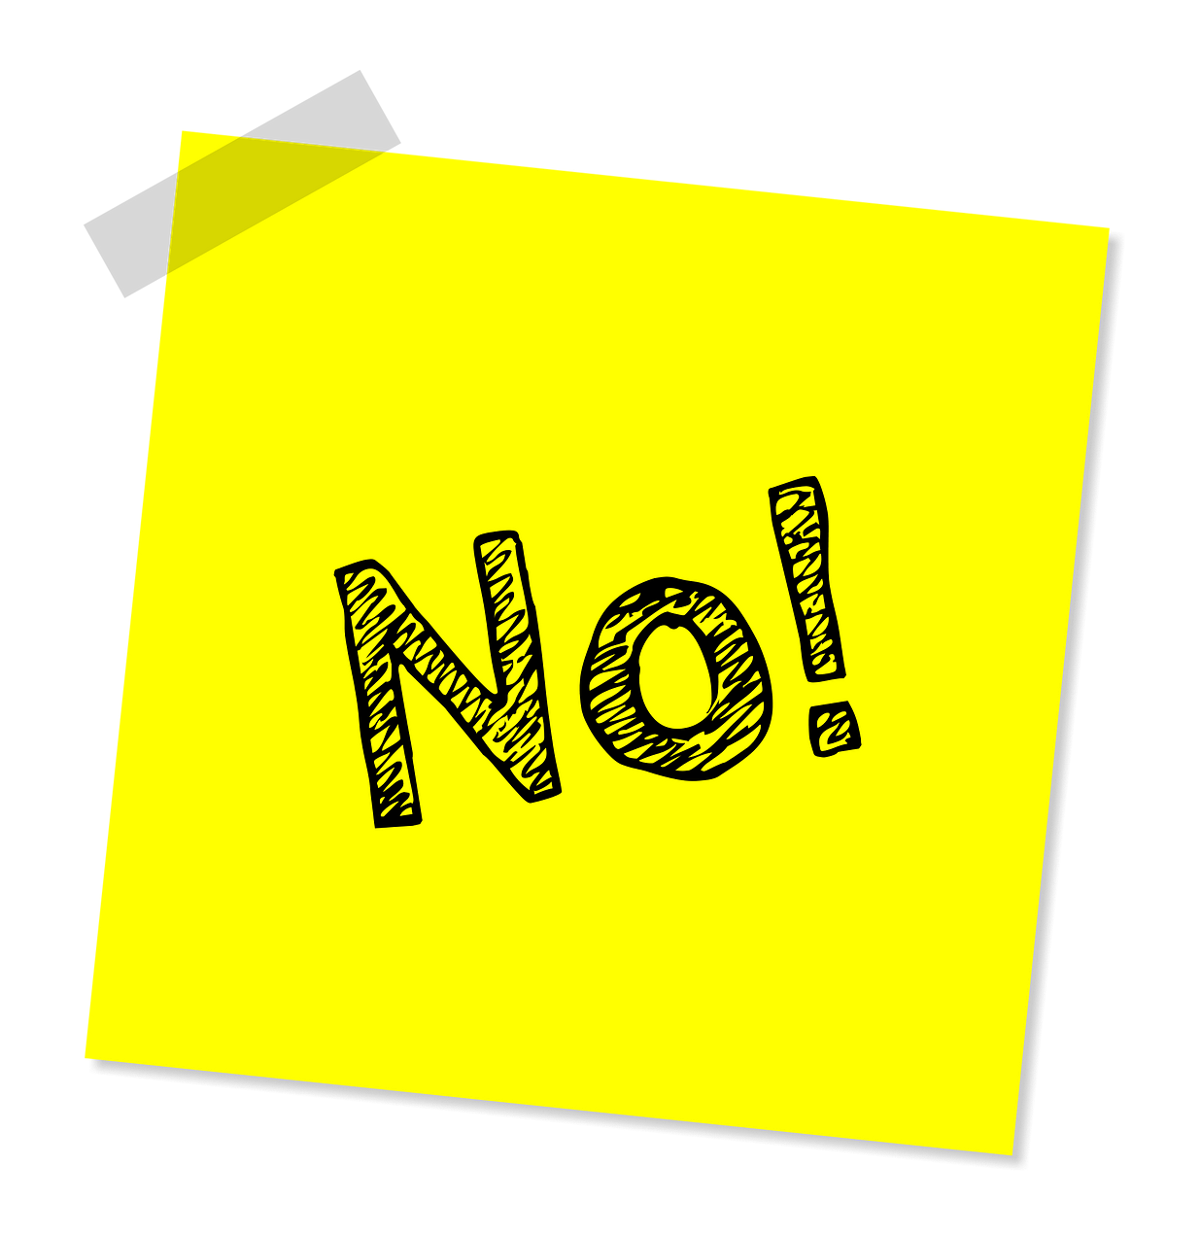 How to become adept at the art of saying NO, gently